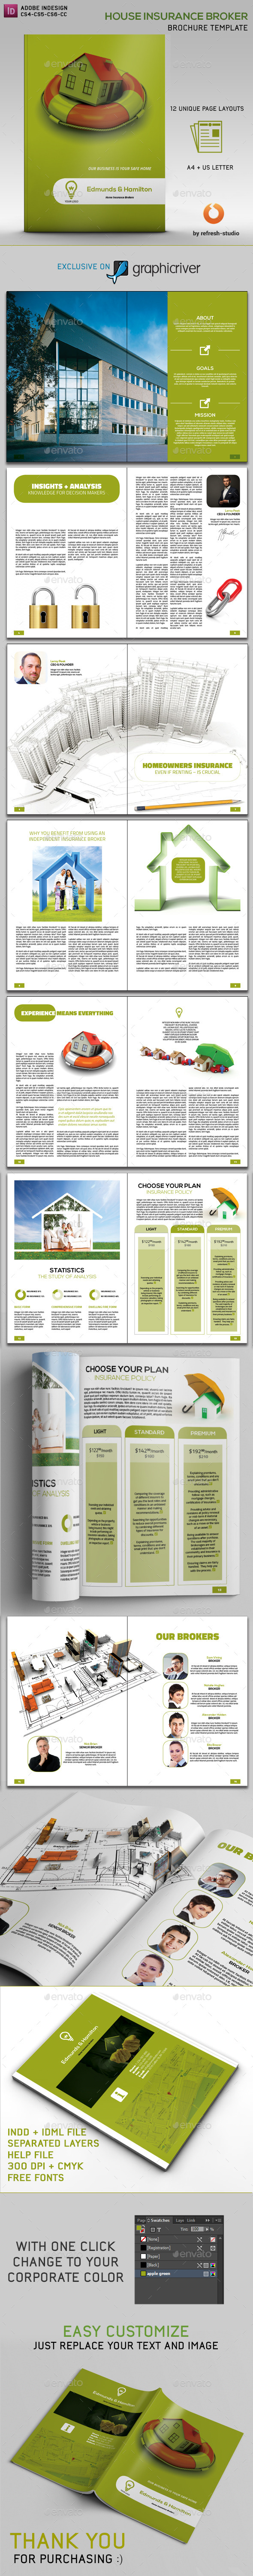 GraphicRiver House Insurance Broker Brochure 11252921